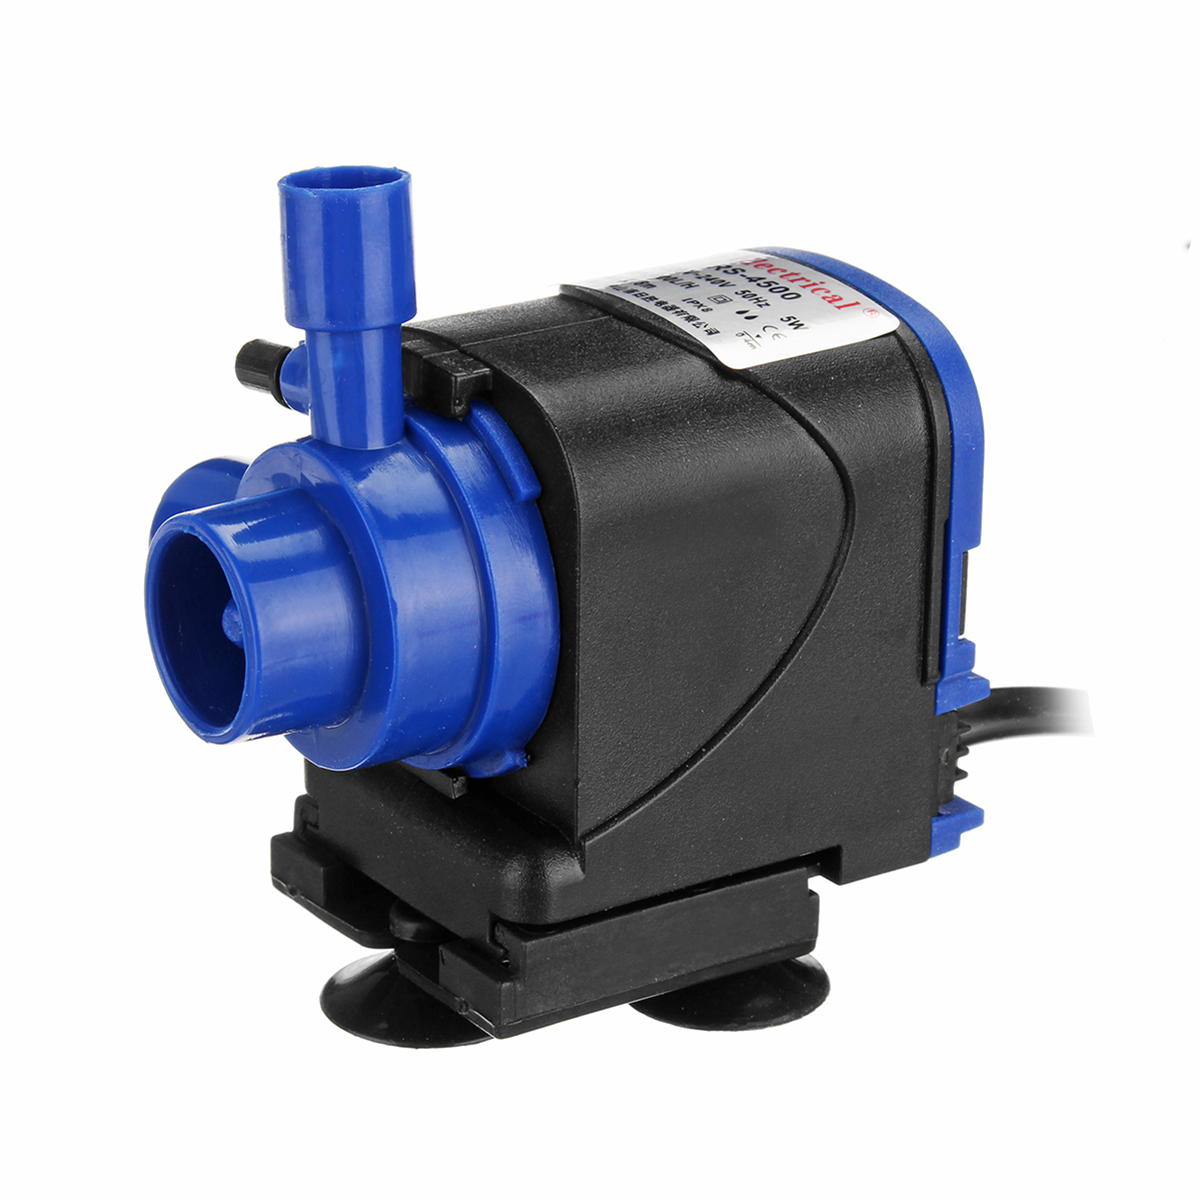 Small water pump multifunction submersible filter pumps for Pond fountain pump